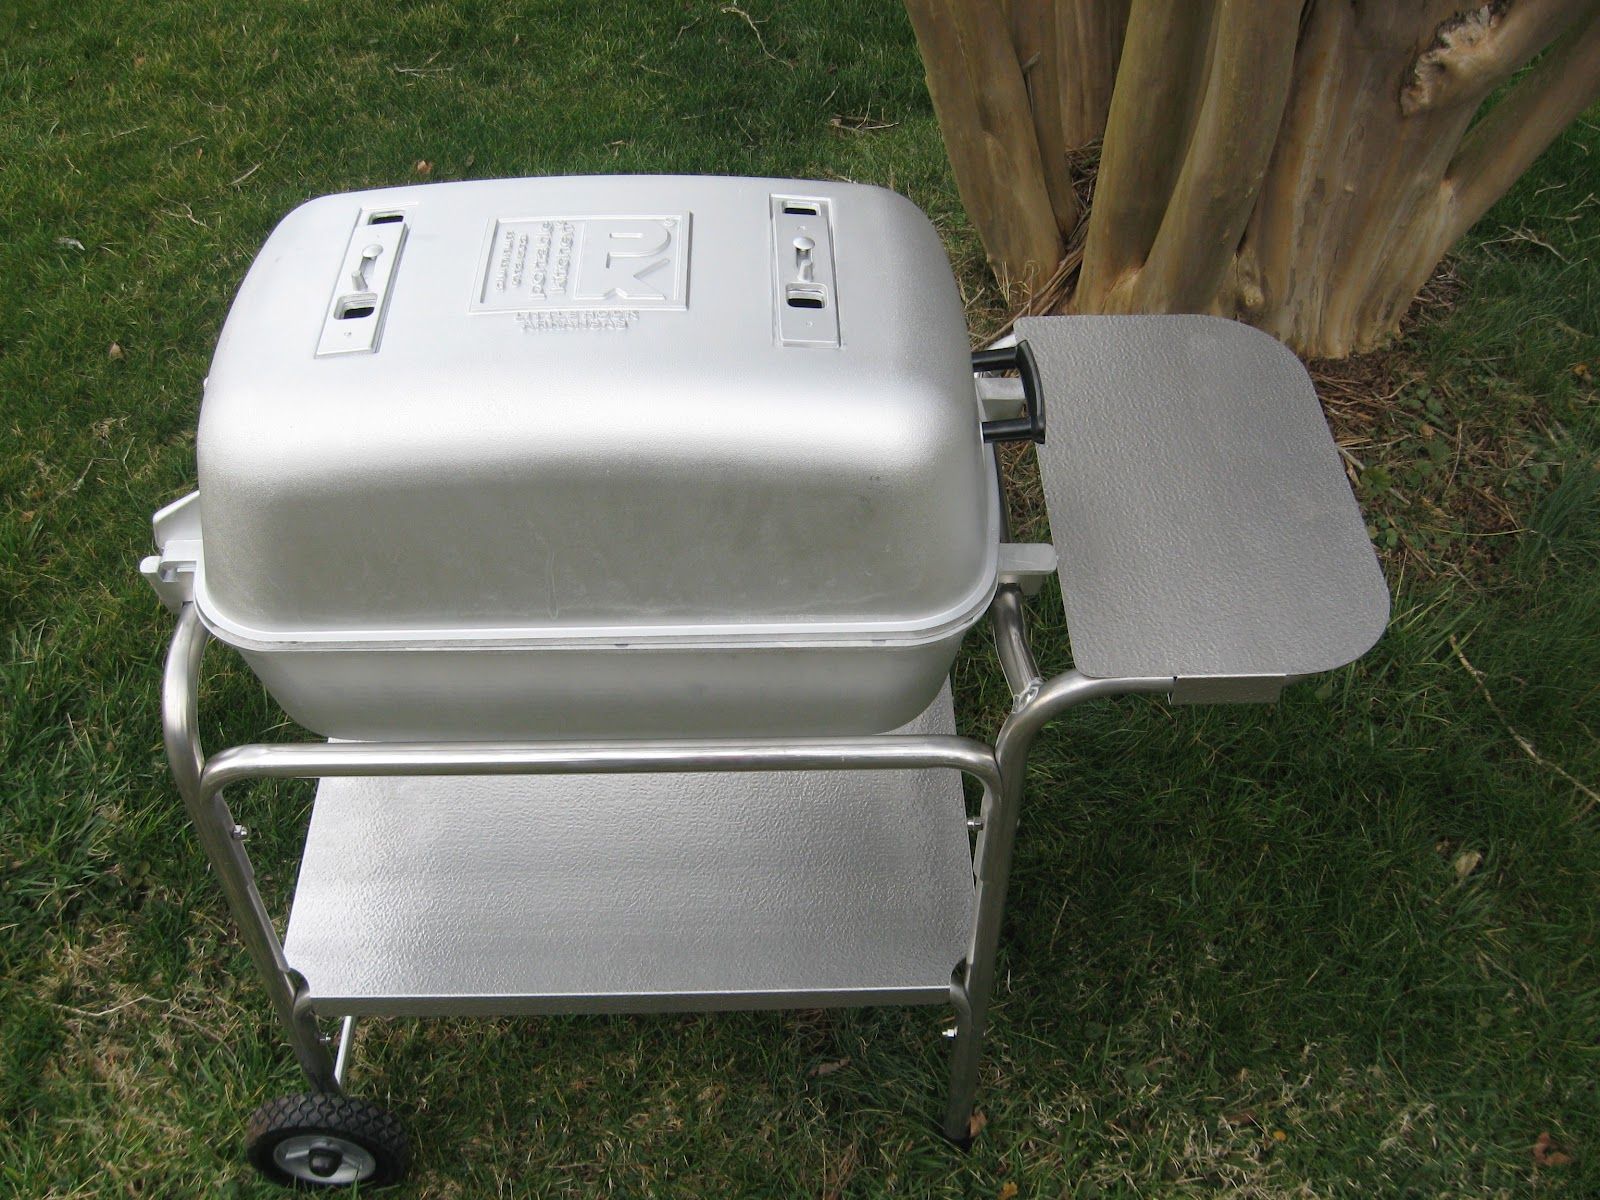 Barbecue Master Clr Grease Magnet Makes Cleaning Grills